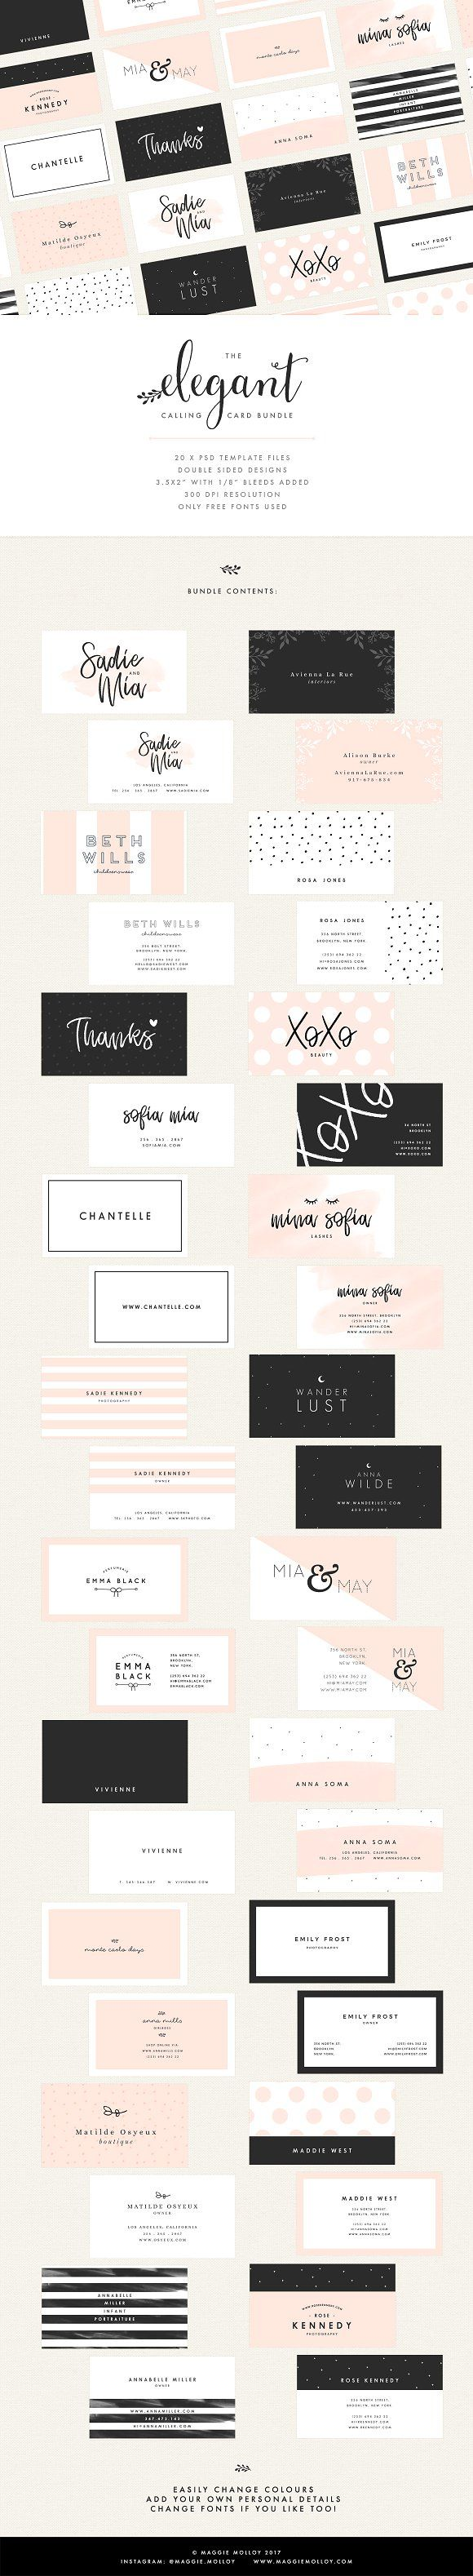 Illustrator Business Card 20 Feminine Business Card Templates by Maggie Molloy on Creative Market